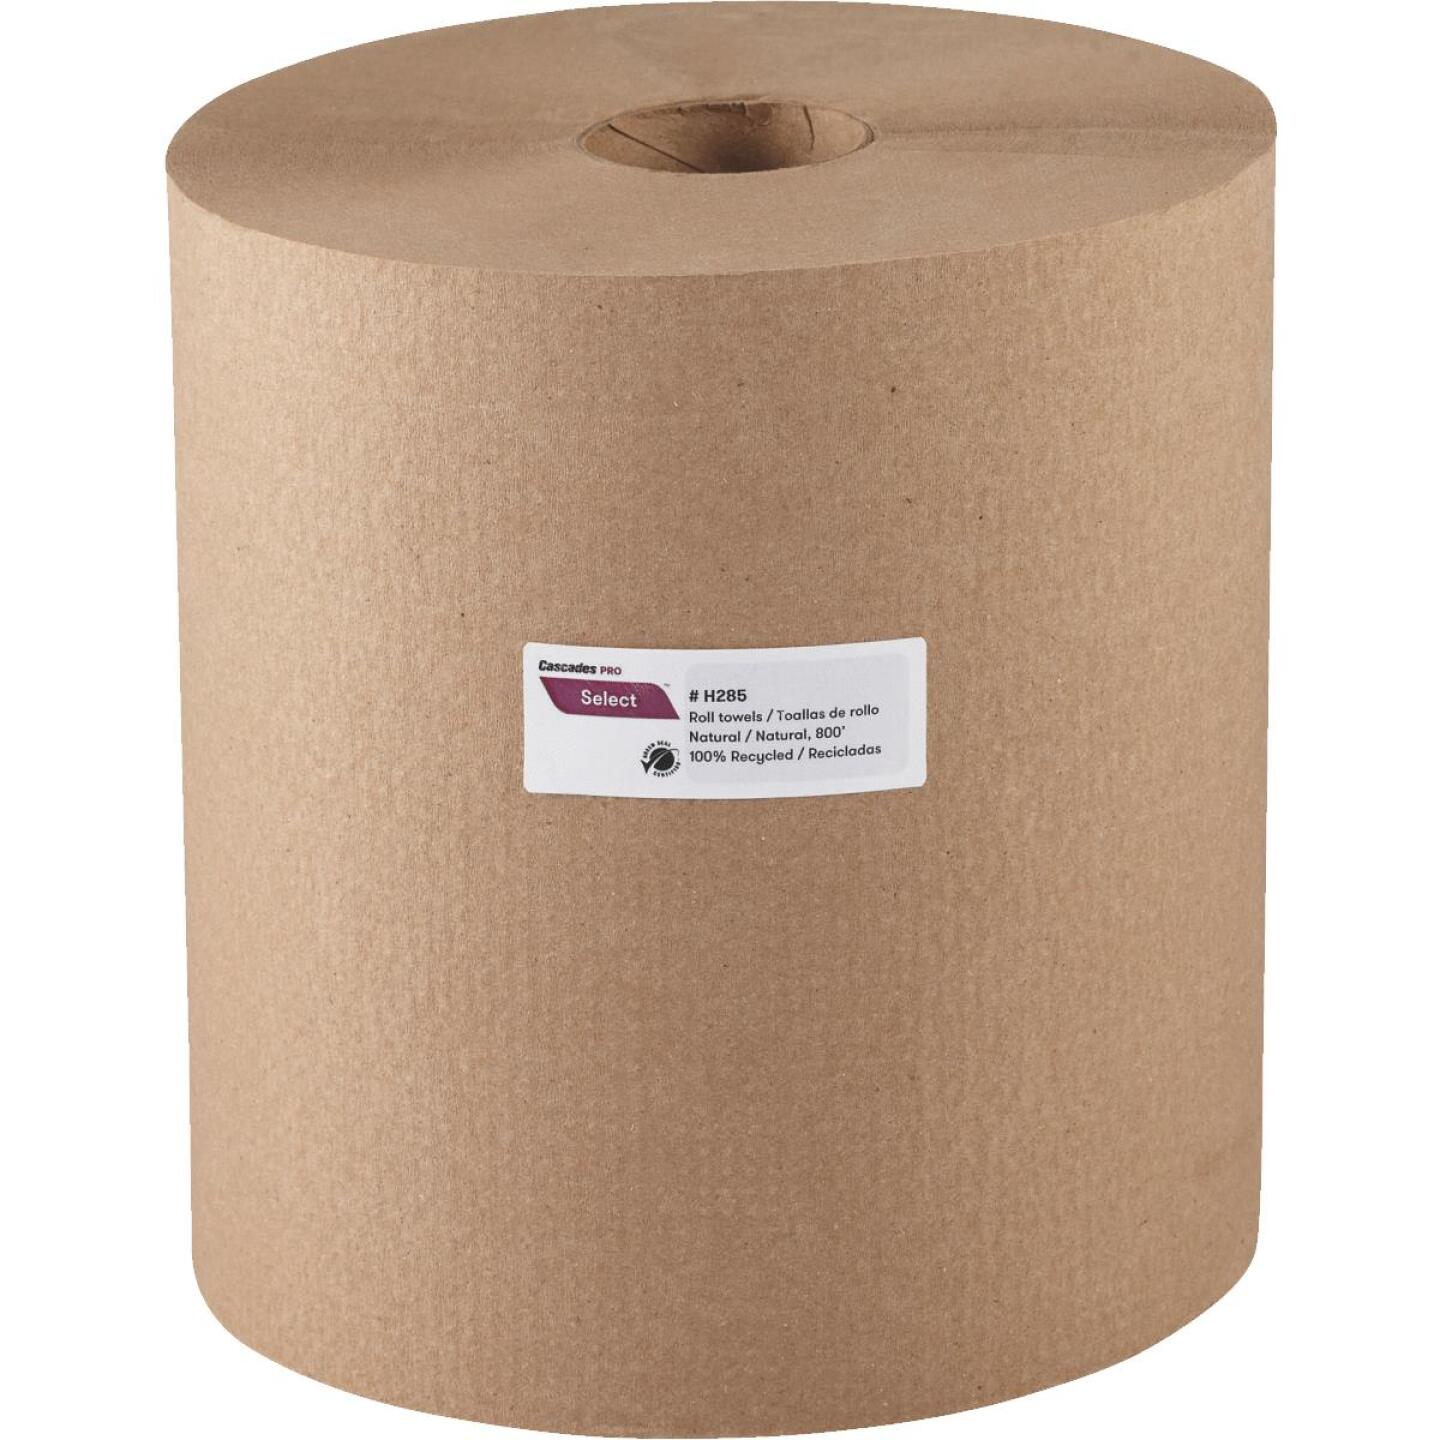 Cascades Pro Select Natural Hard Roll Towel (6 Count) Image 1